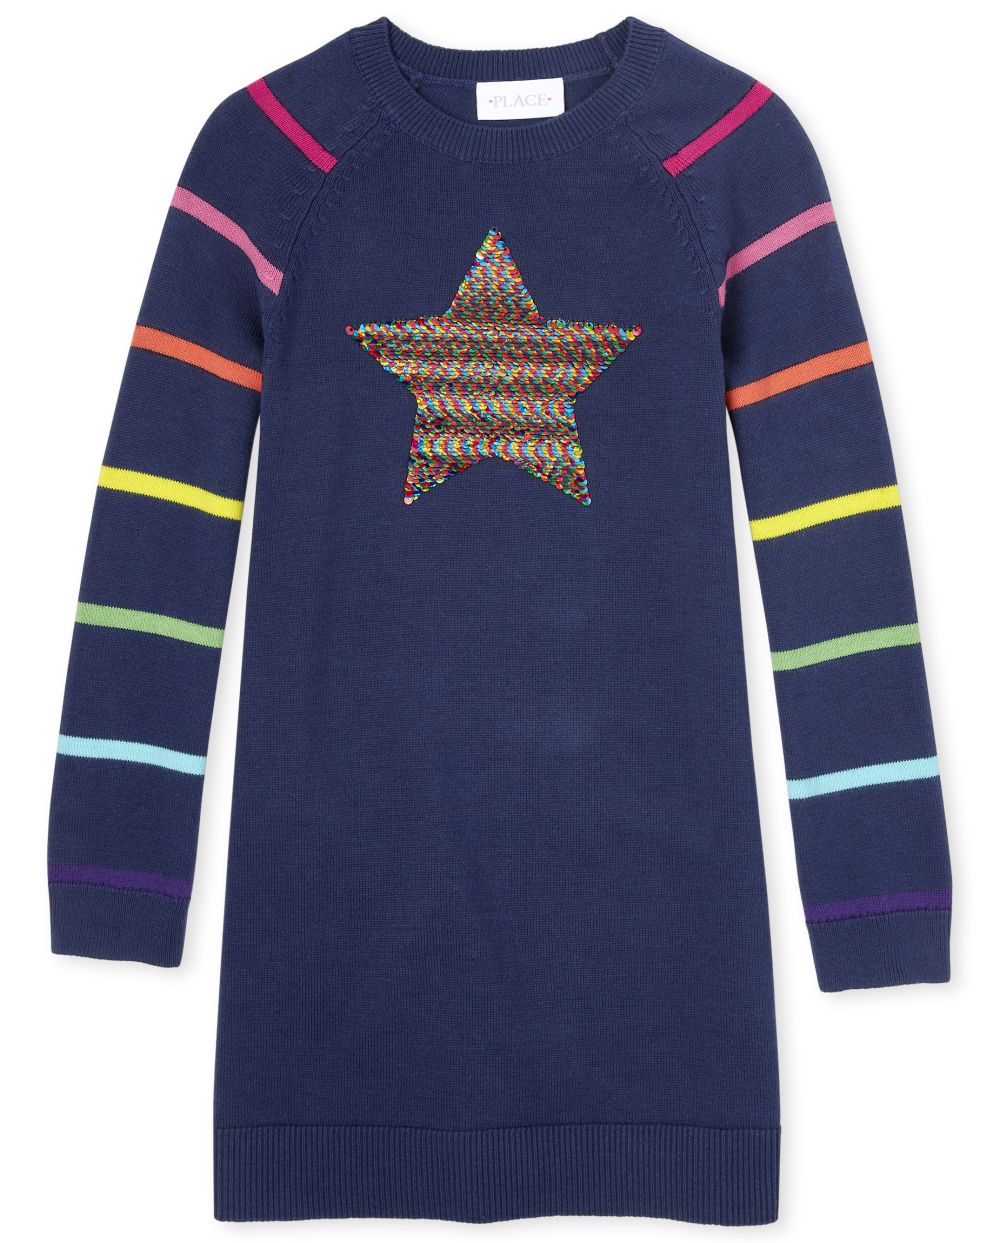 Girls Flip Sequin Rainbow Star Sweater Dress - Blue